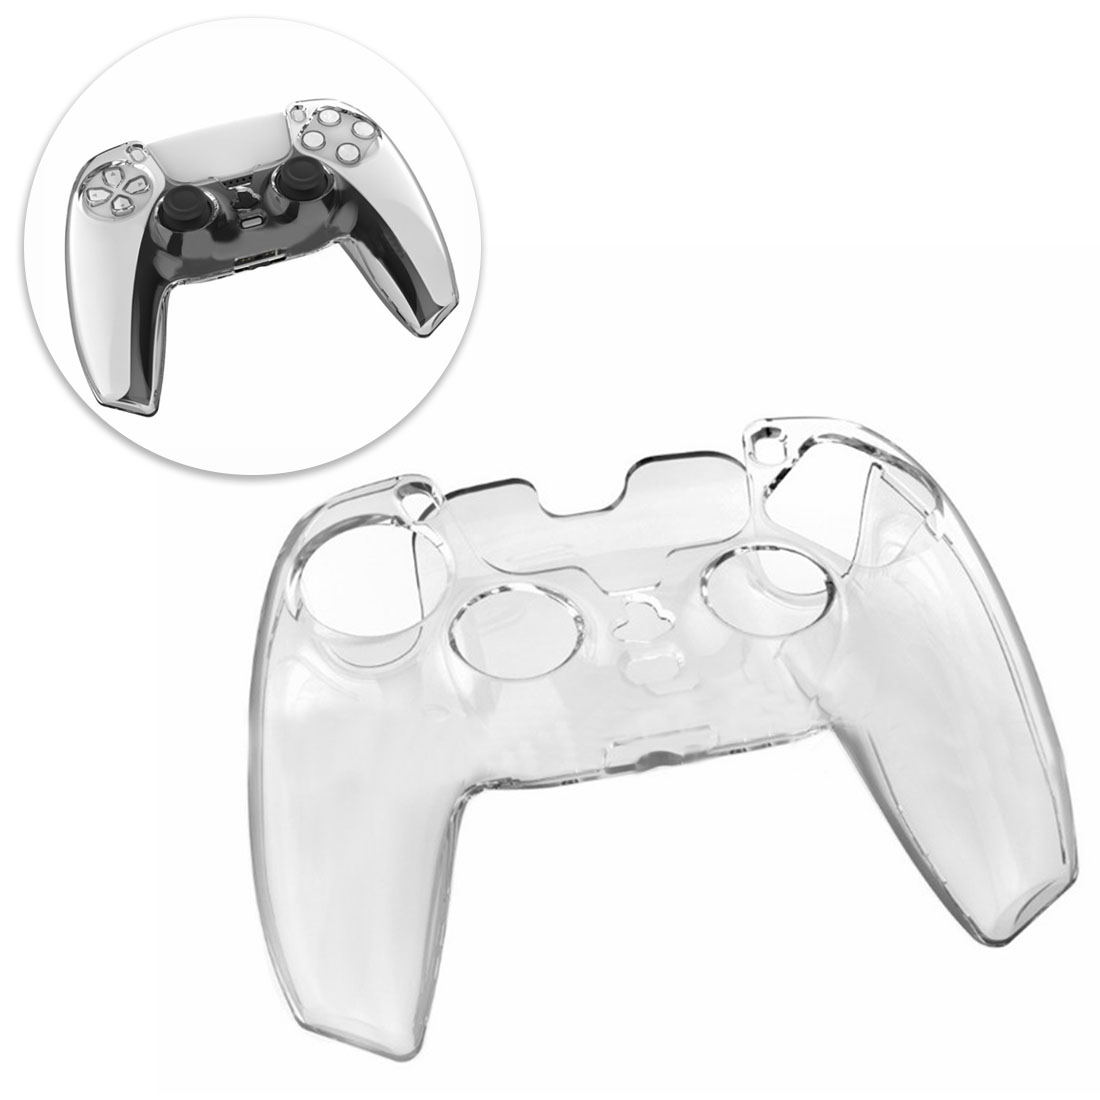 PC Gamepad Case Anti-Slip Protective Cover for PS5 Controller (Transparent)